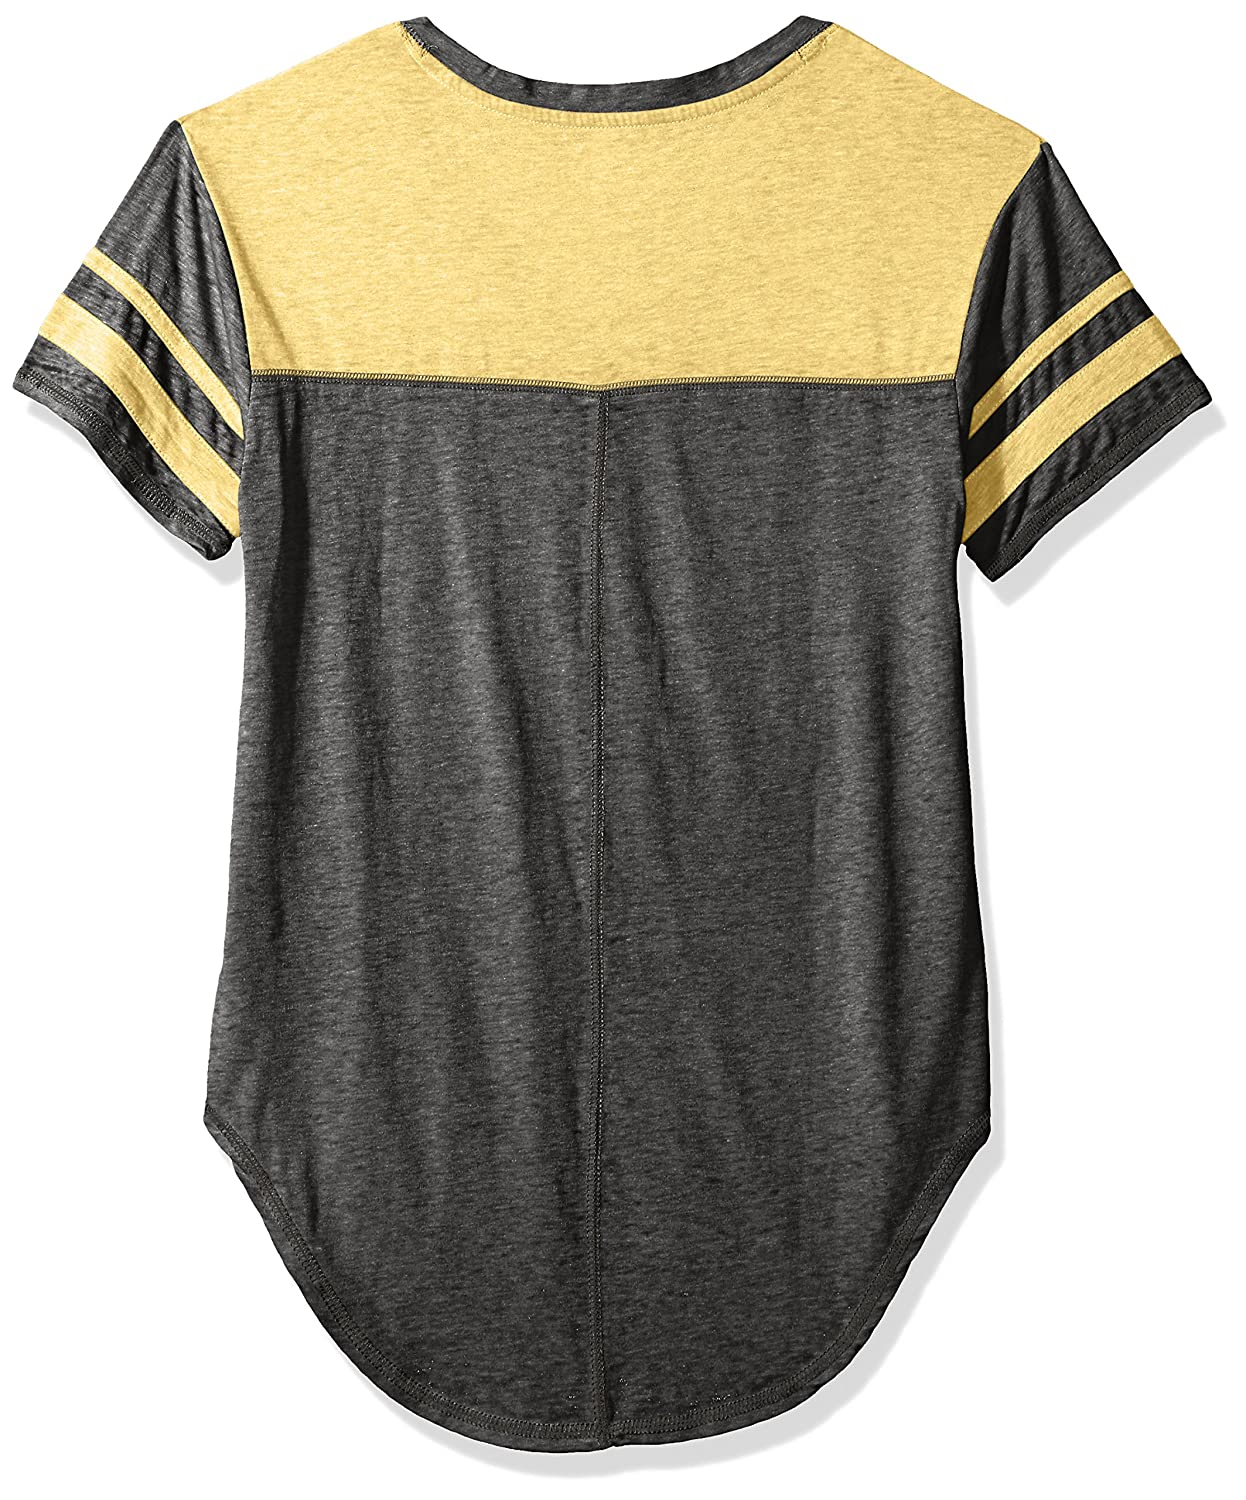 Team Color NCAA Wake Forest Demon Deacons Juniors Outerstuff Vintage Short Sleeve Football Tee Small 3-5